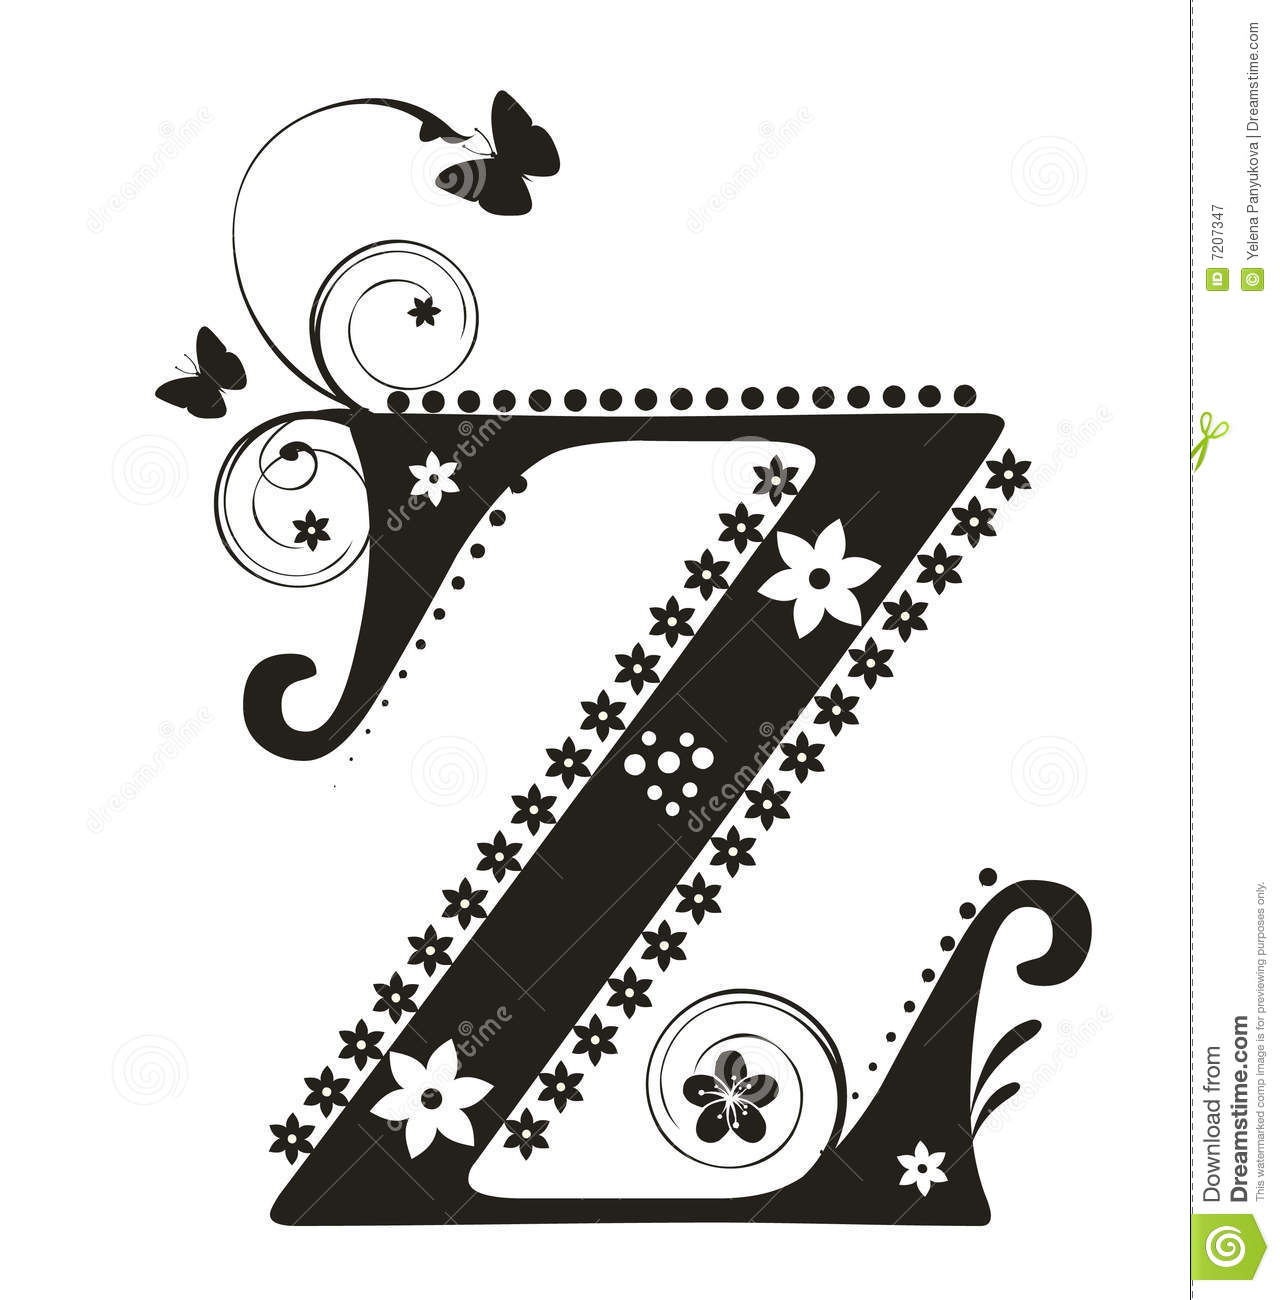 Letter Z Royalty Free Stock Photography - Image: 7207347